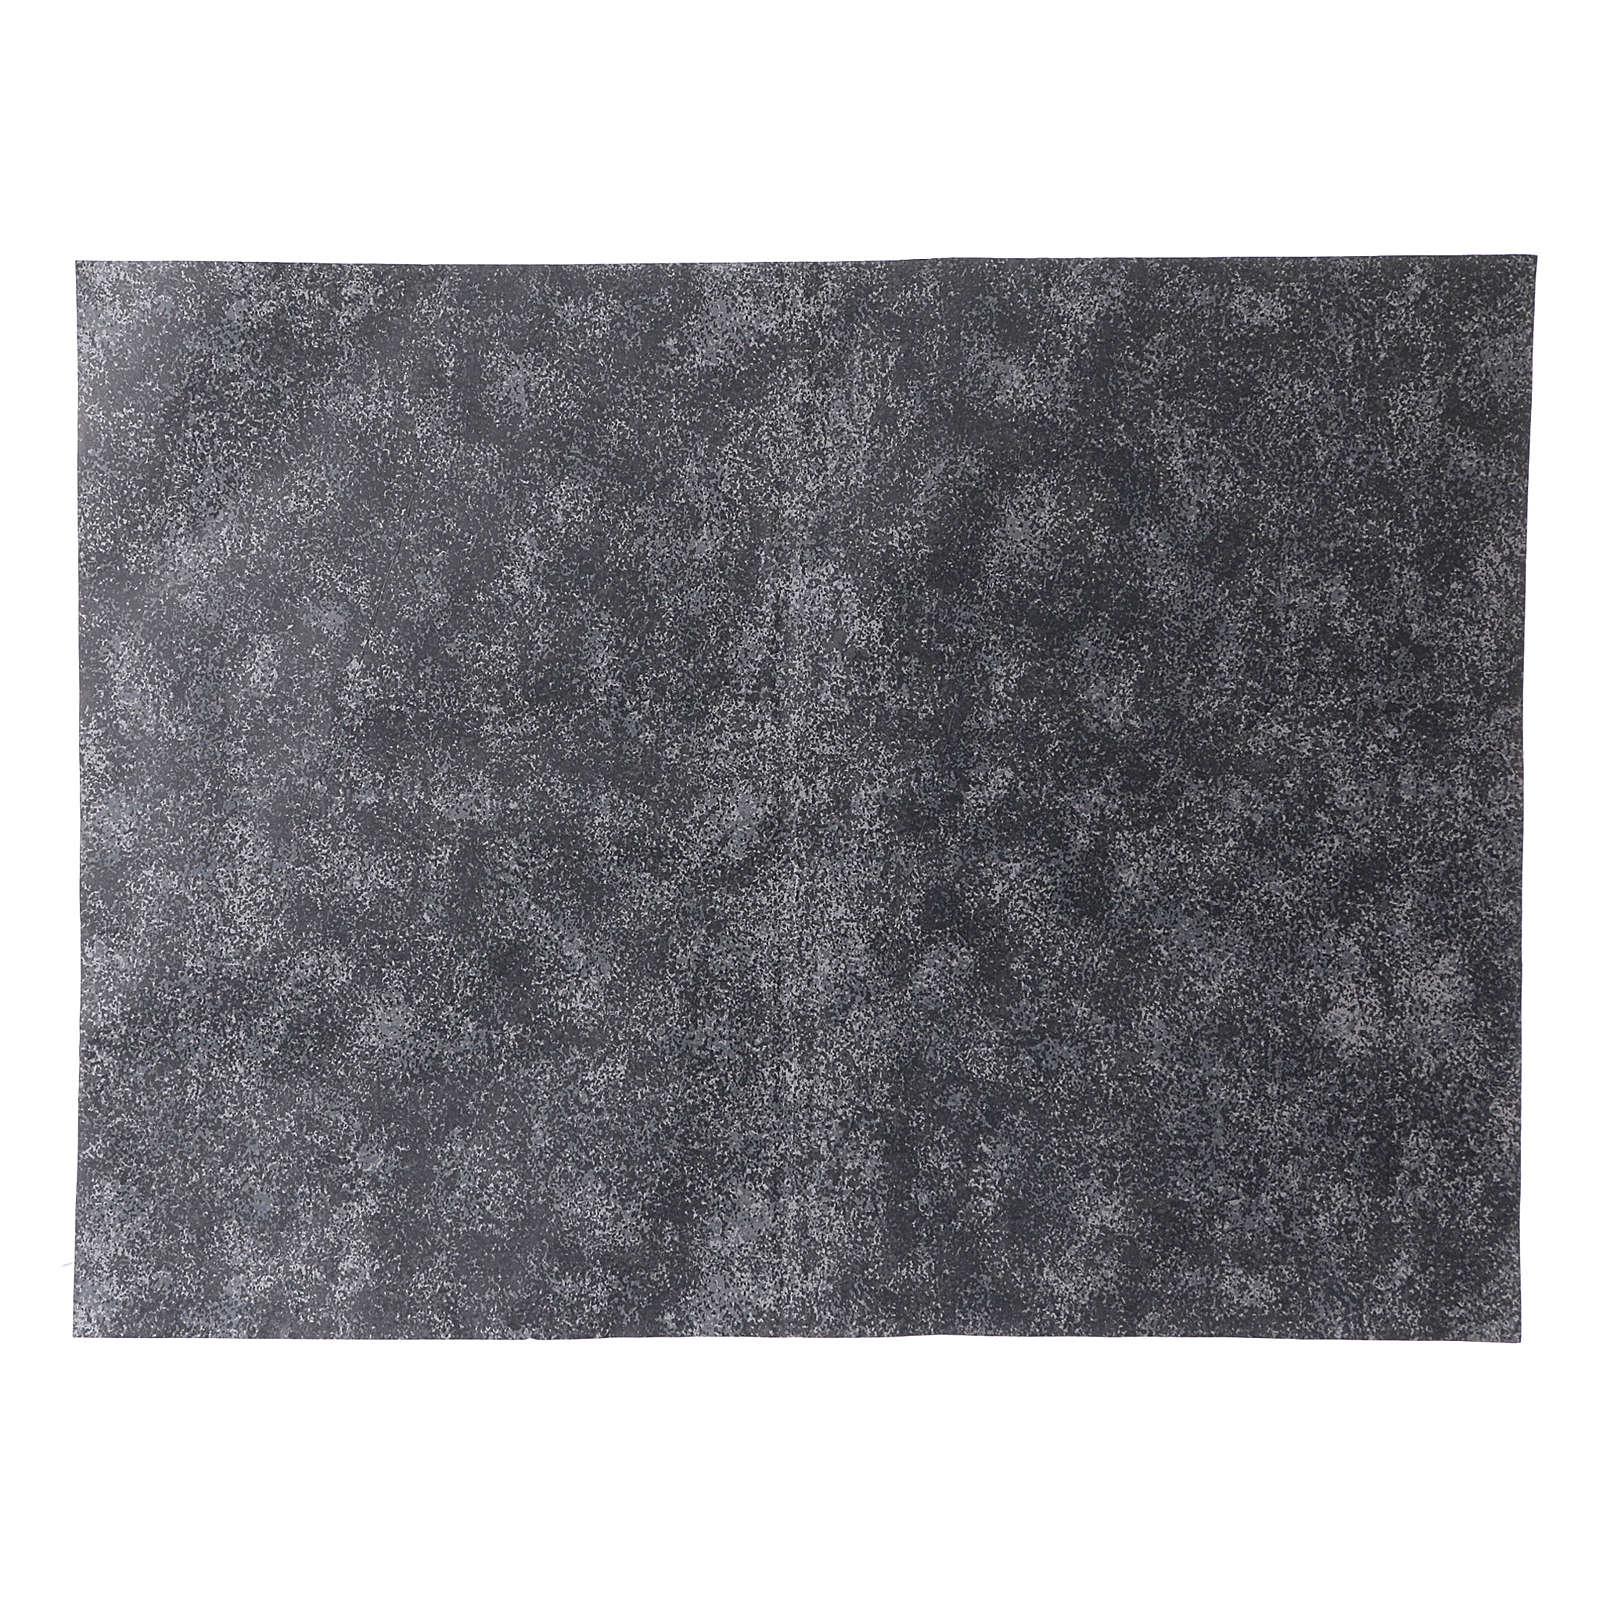 Mouldable grey rock paper, dimensions 50x70 cm 4